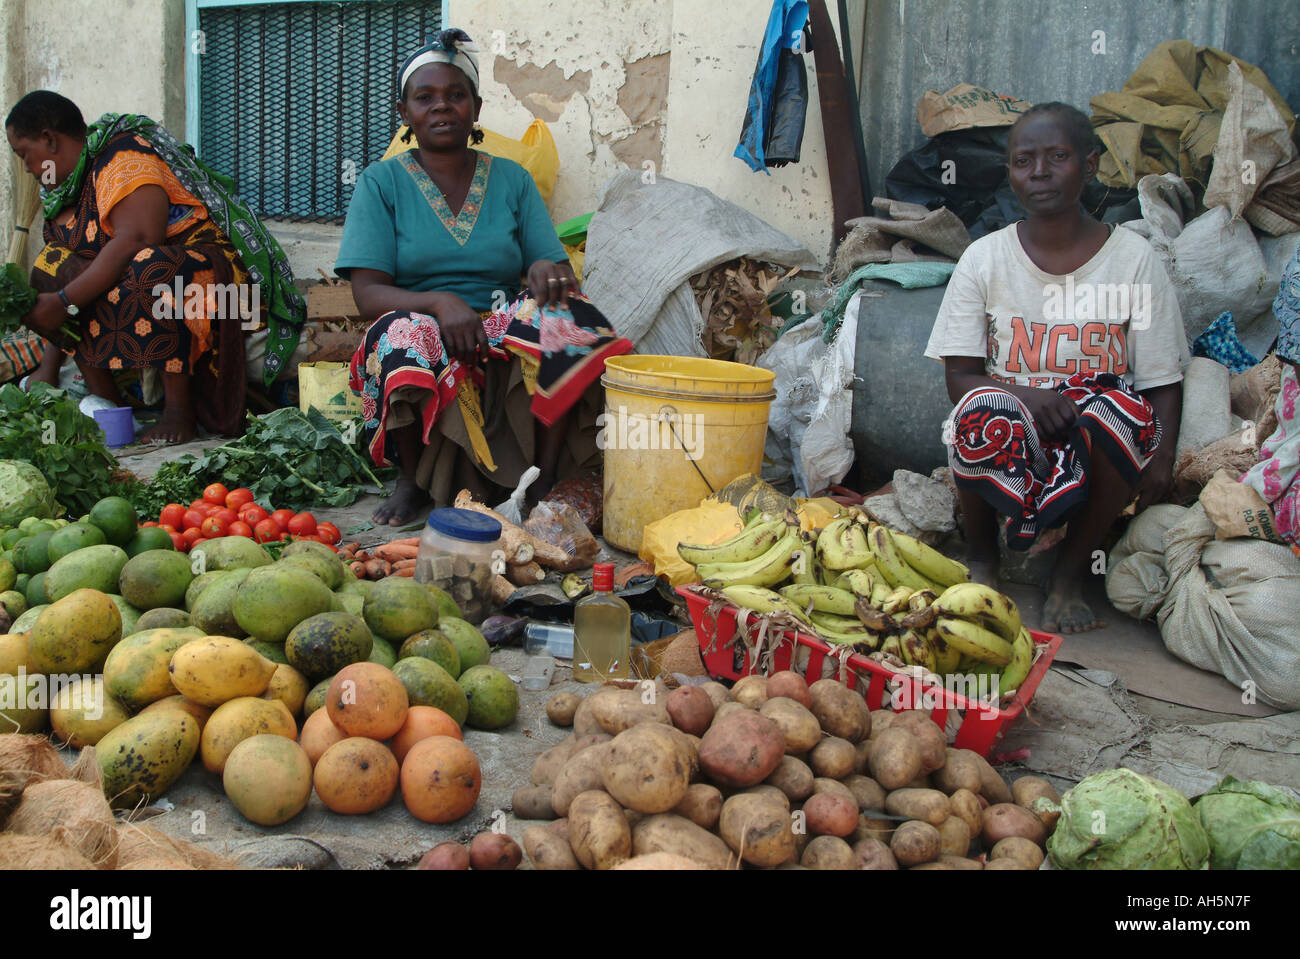 Women selling fruit and vegetables on the pavement in Kenyan